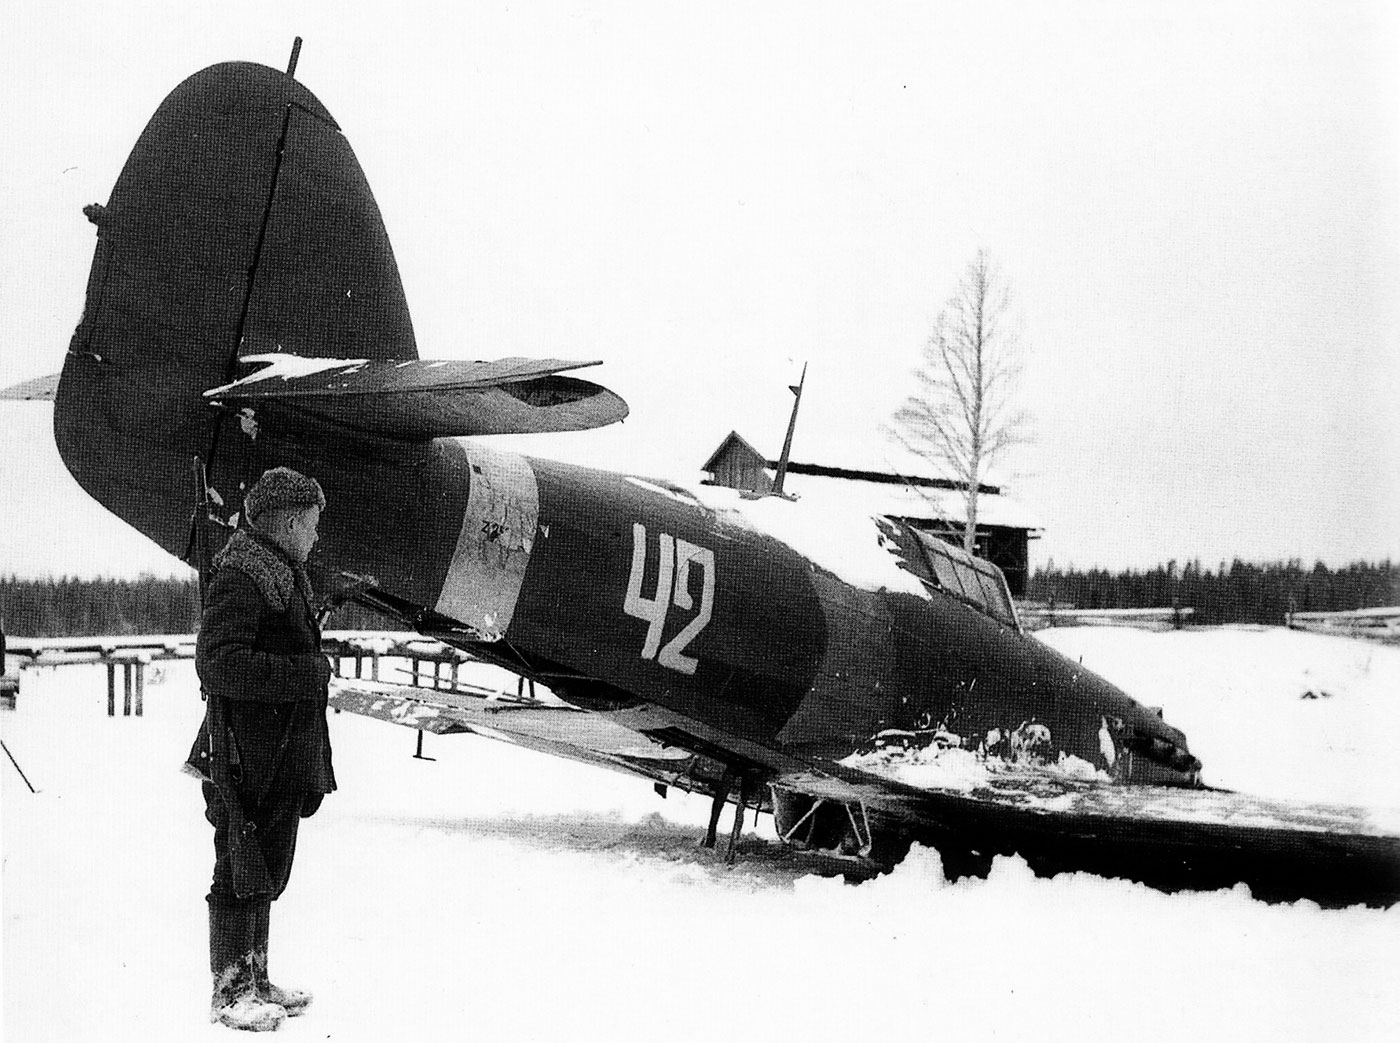 Hurricane II USSR 152IAP W42 Z2585 force landed  Tuoppajarvi and captured by Finnish forces 18th Feb 1942 04